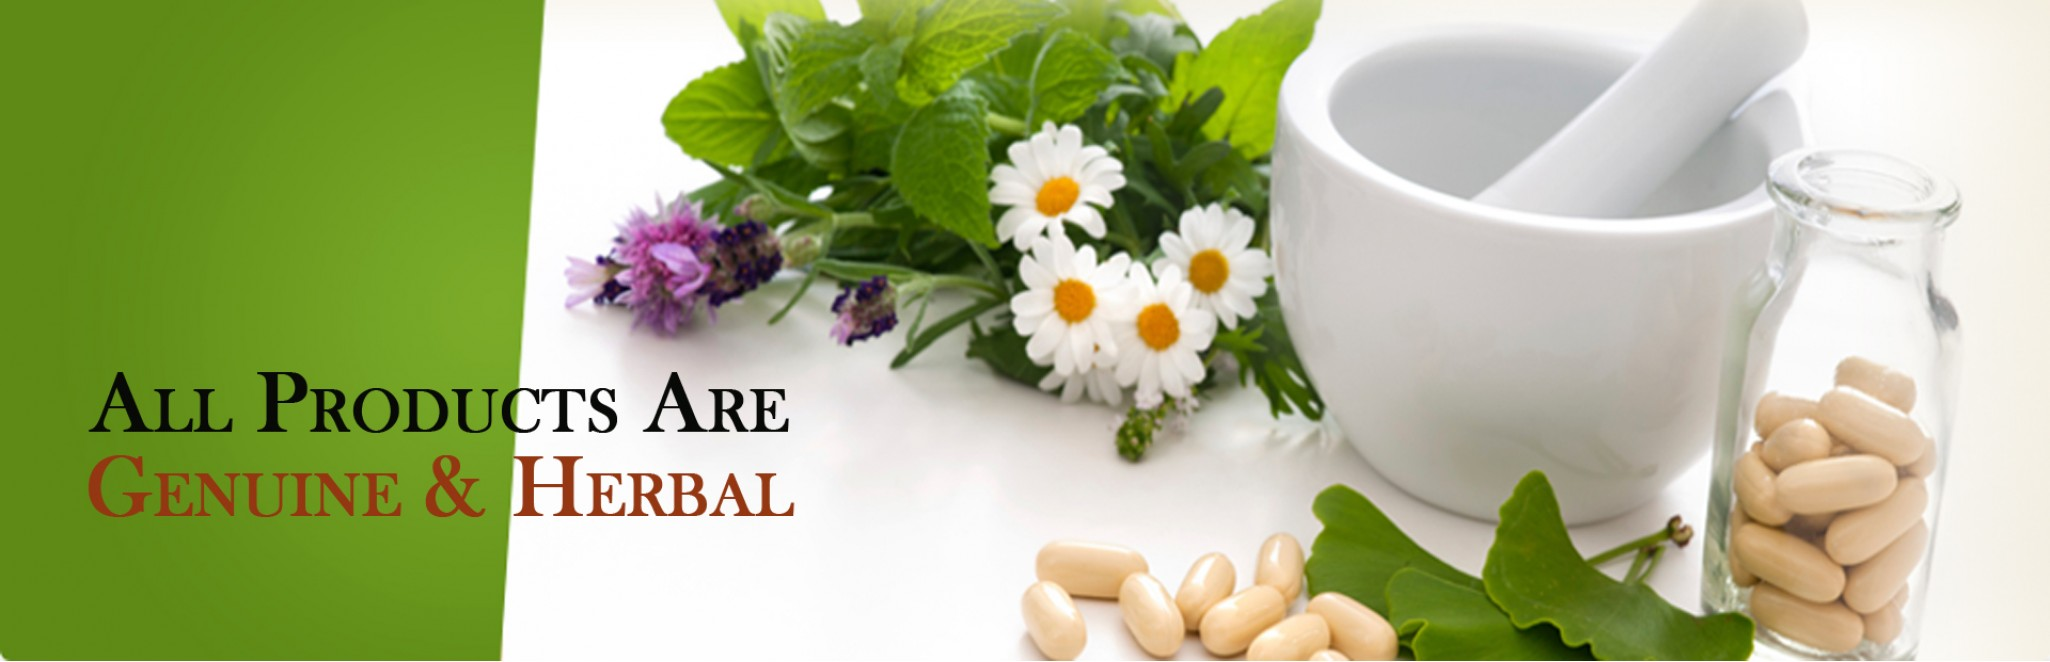 All Products are Genuine & Herbal